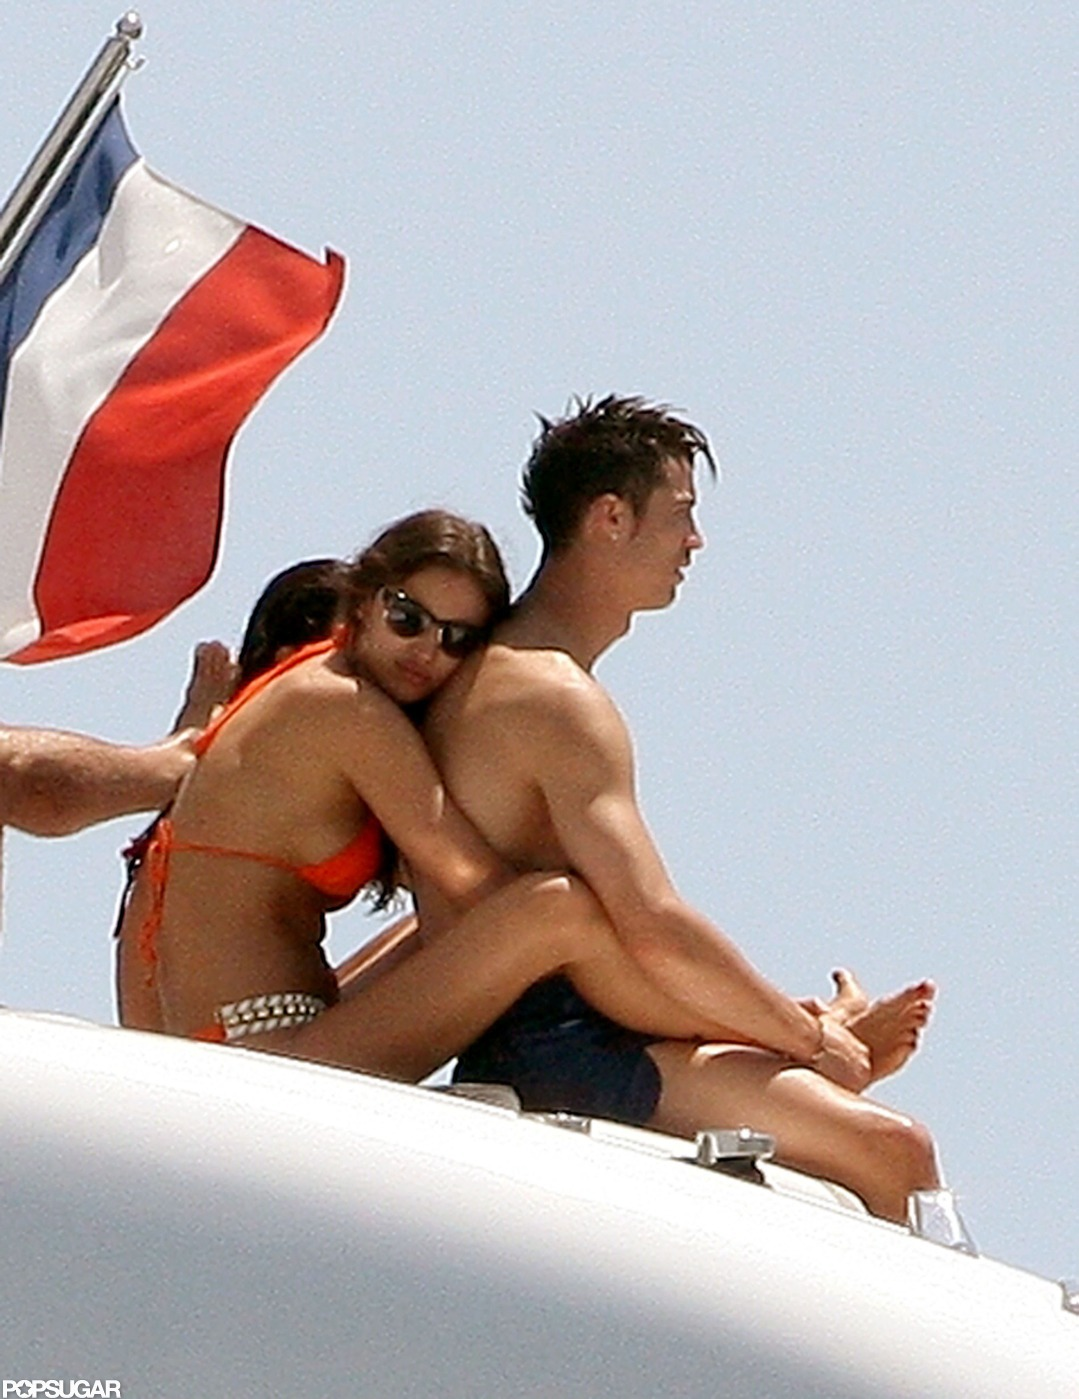 Cristiano Ronaldo and Irina Shayk cuddled up in St.-Tropez during a trip in July 2012.